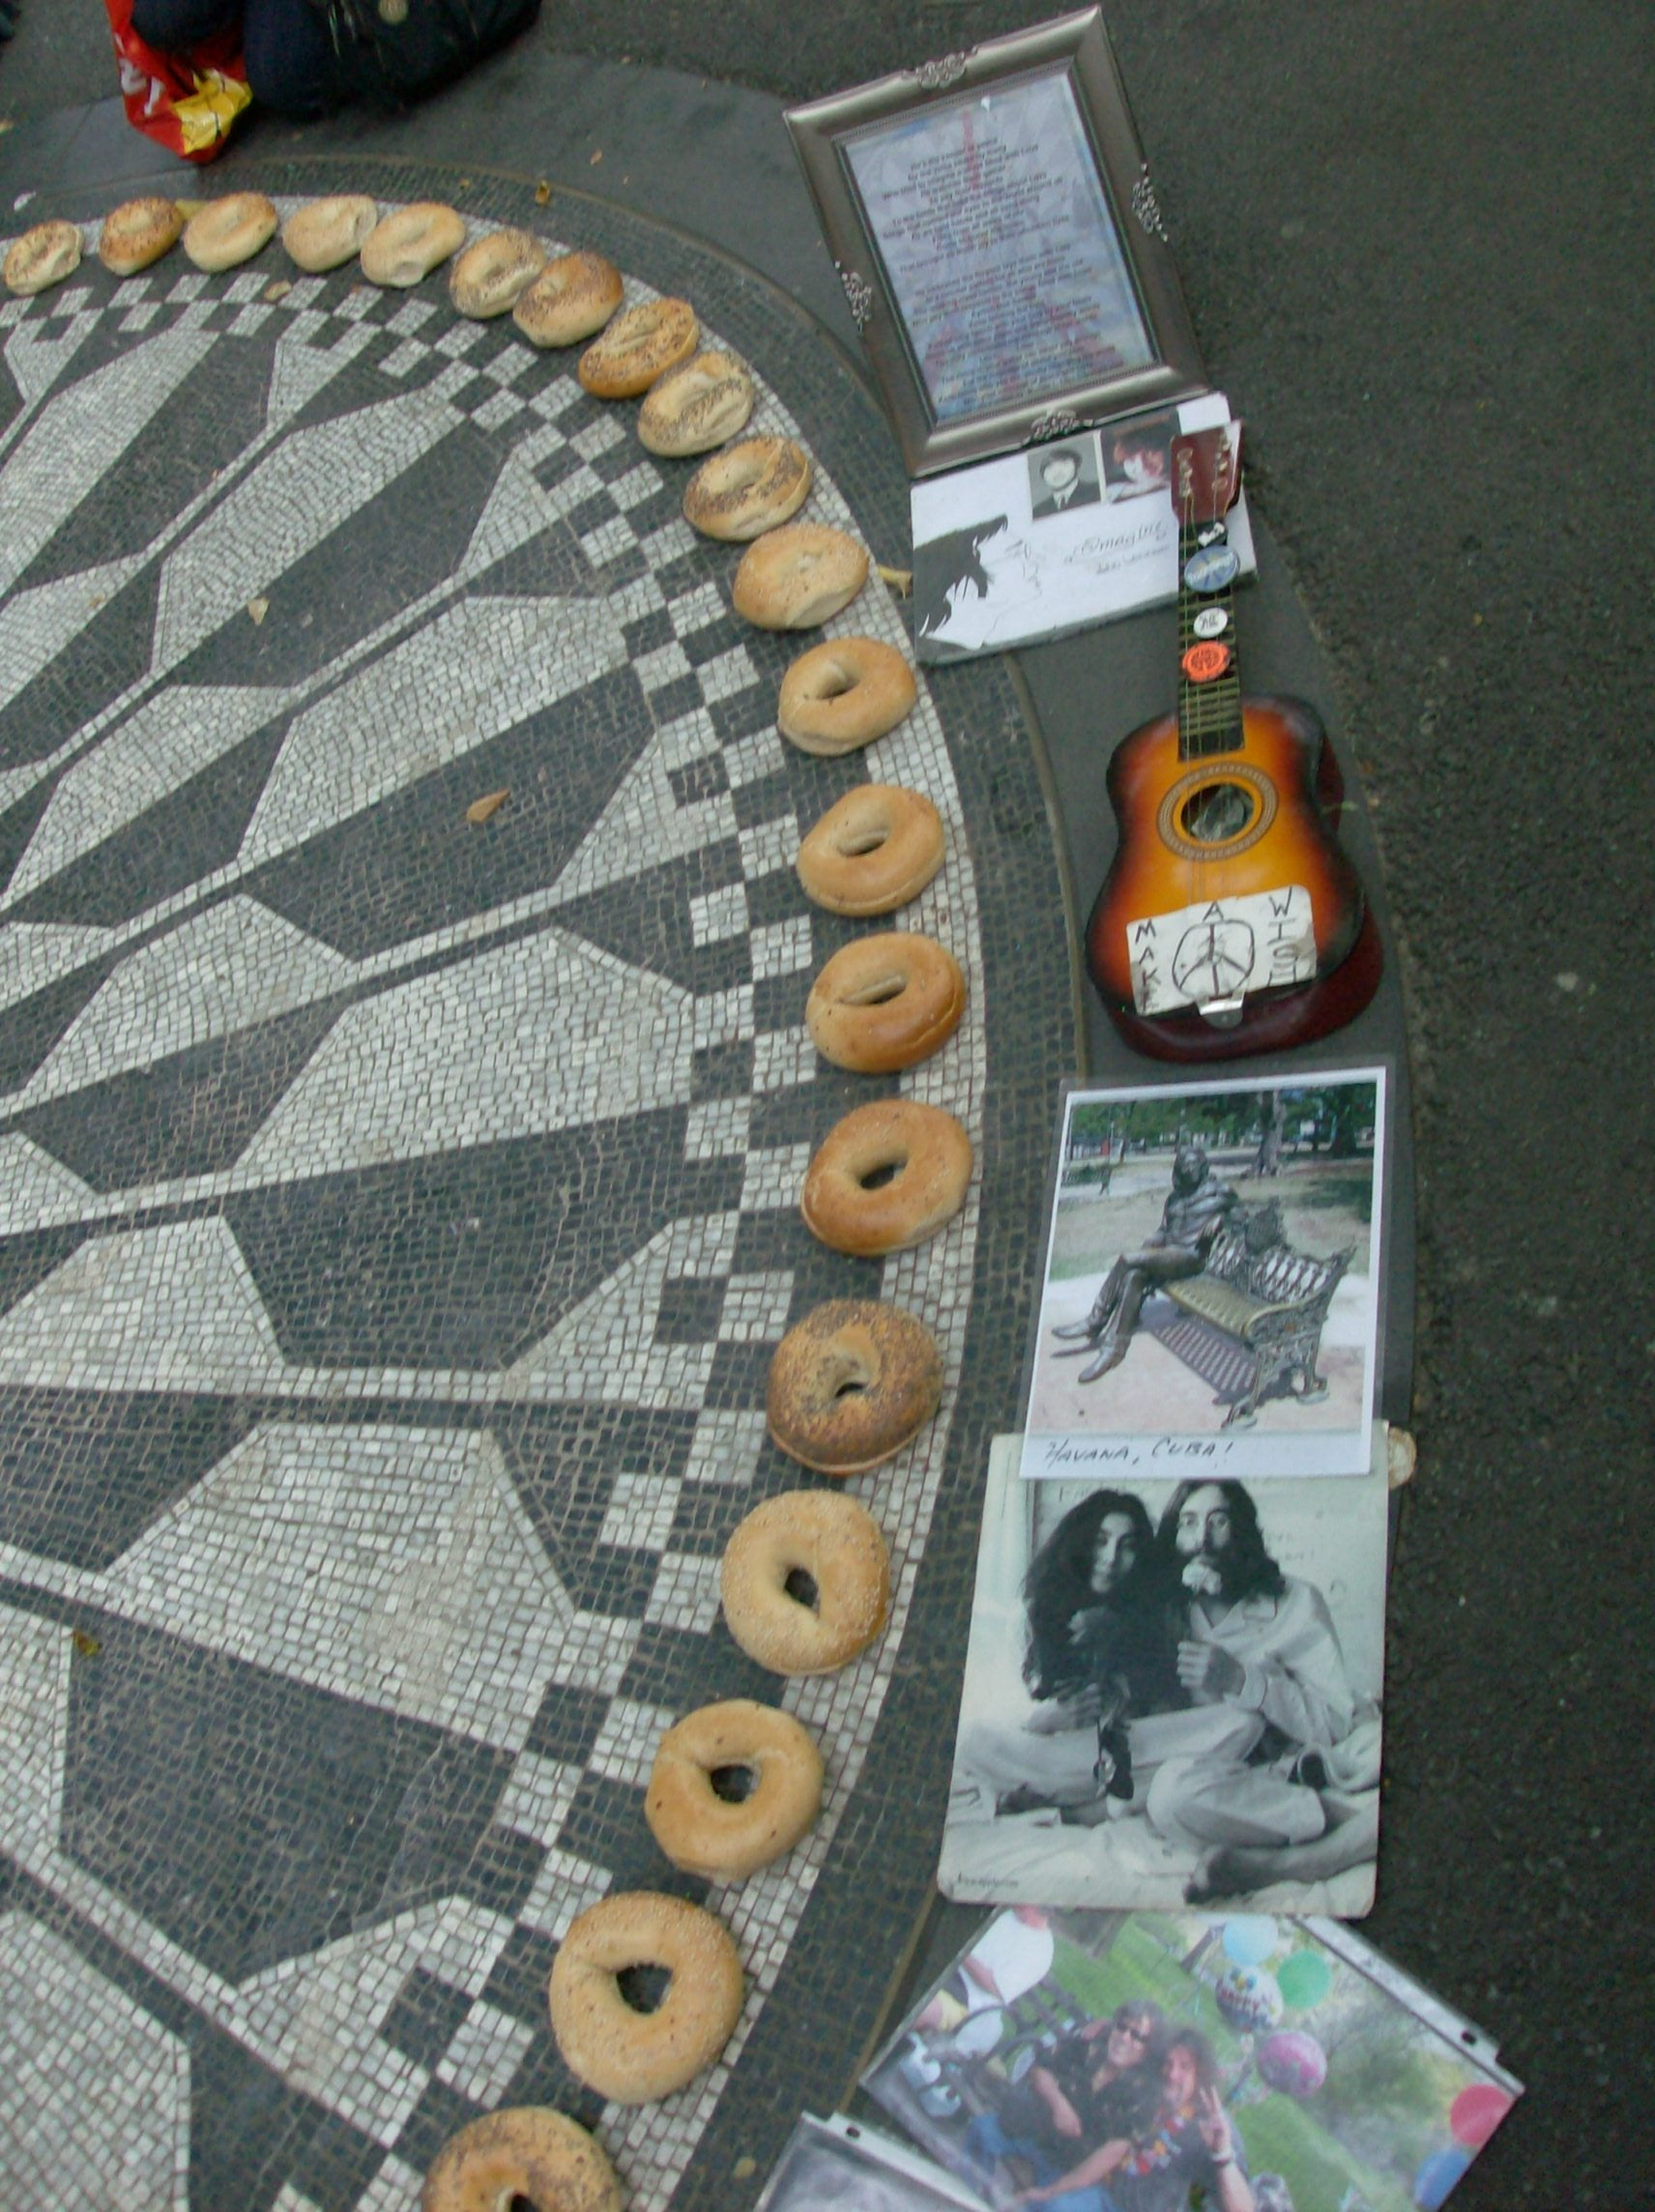 Arte en Strawberry Fields - monumento a John Lennon